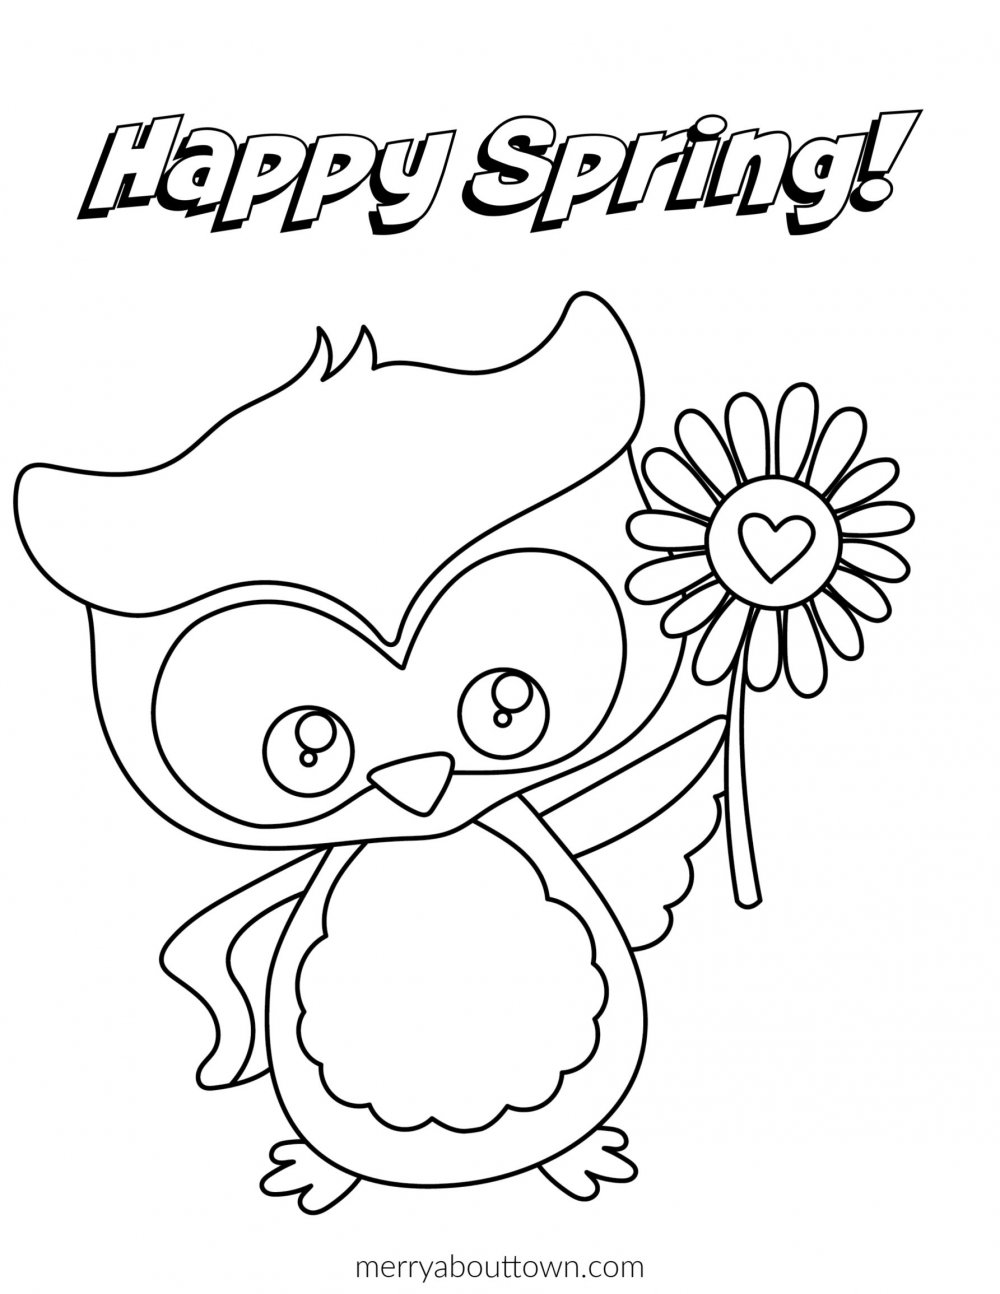 Happy Spring Owl printable Coloring Sheet